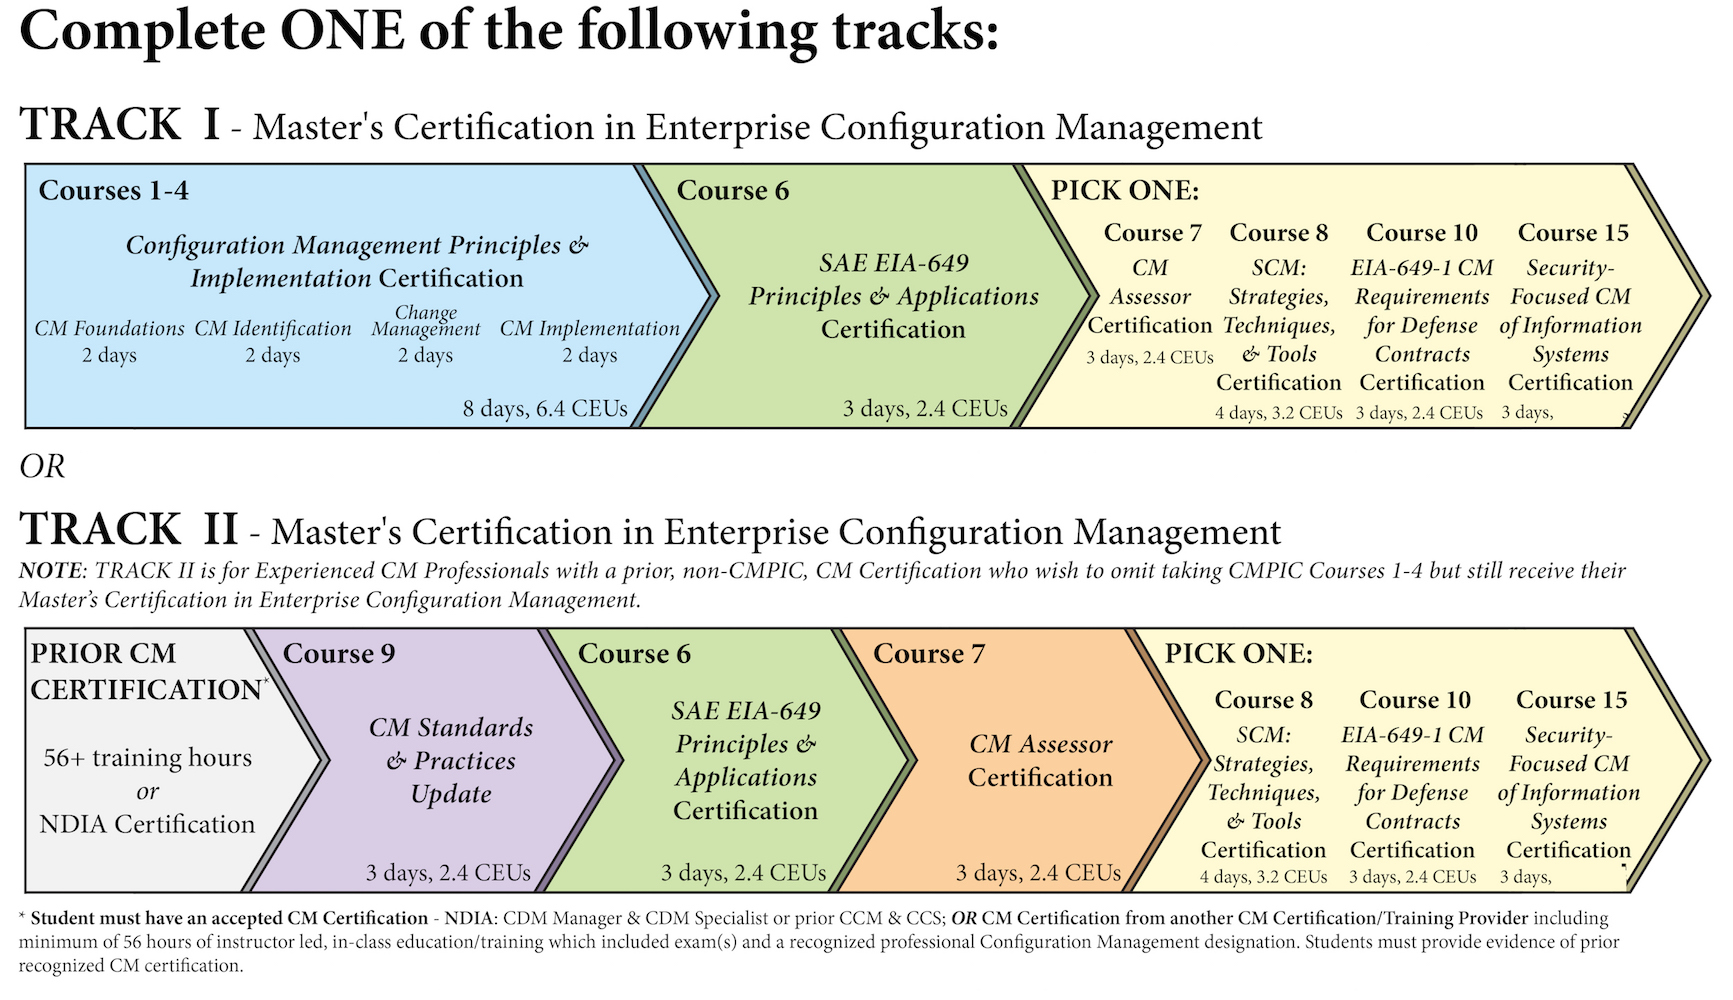 Table with class overview of requirements for the CMPIC Masters Certification in Enterprise Configuration Management.